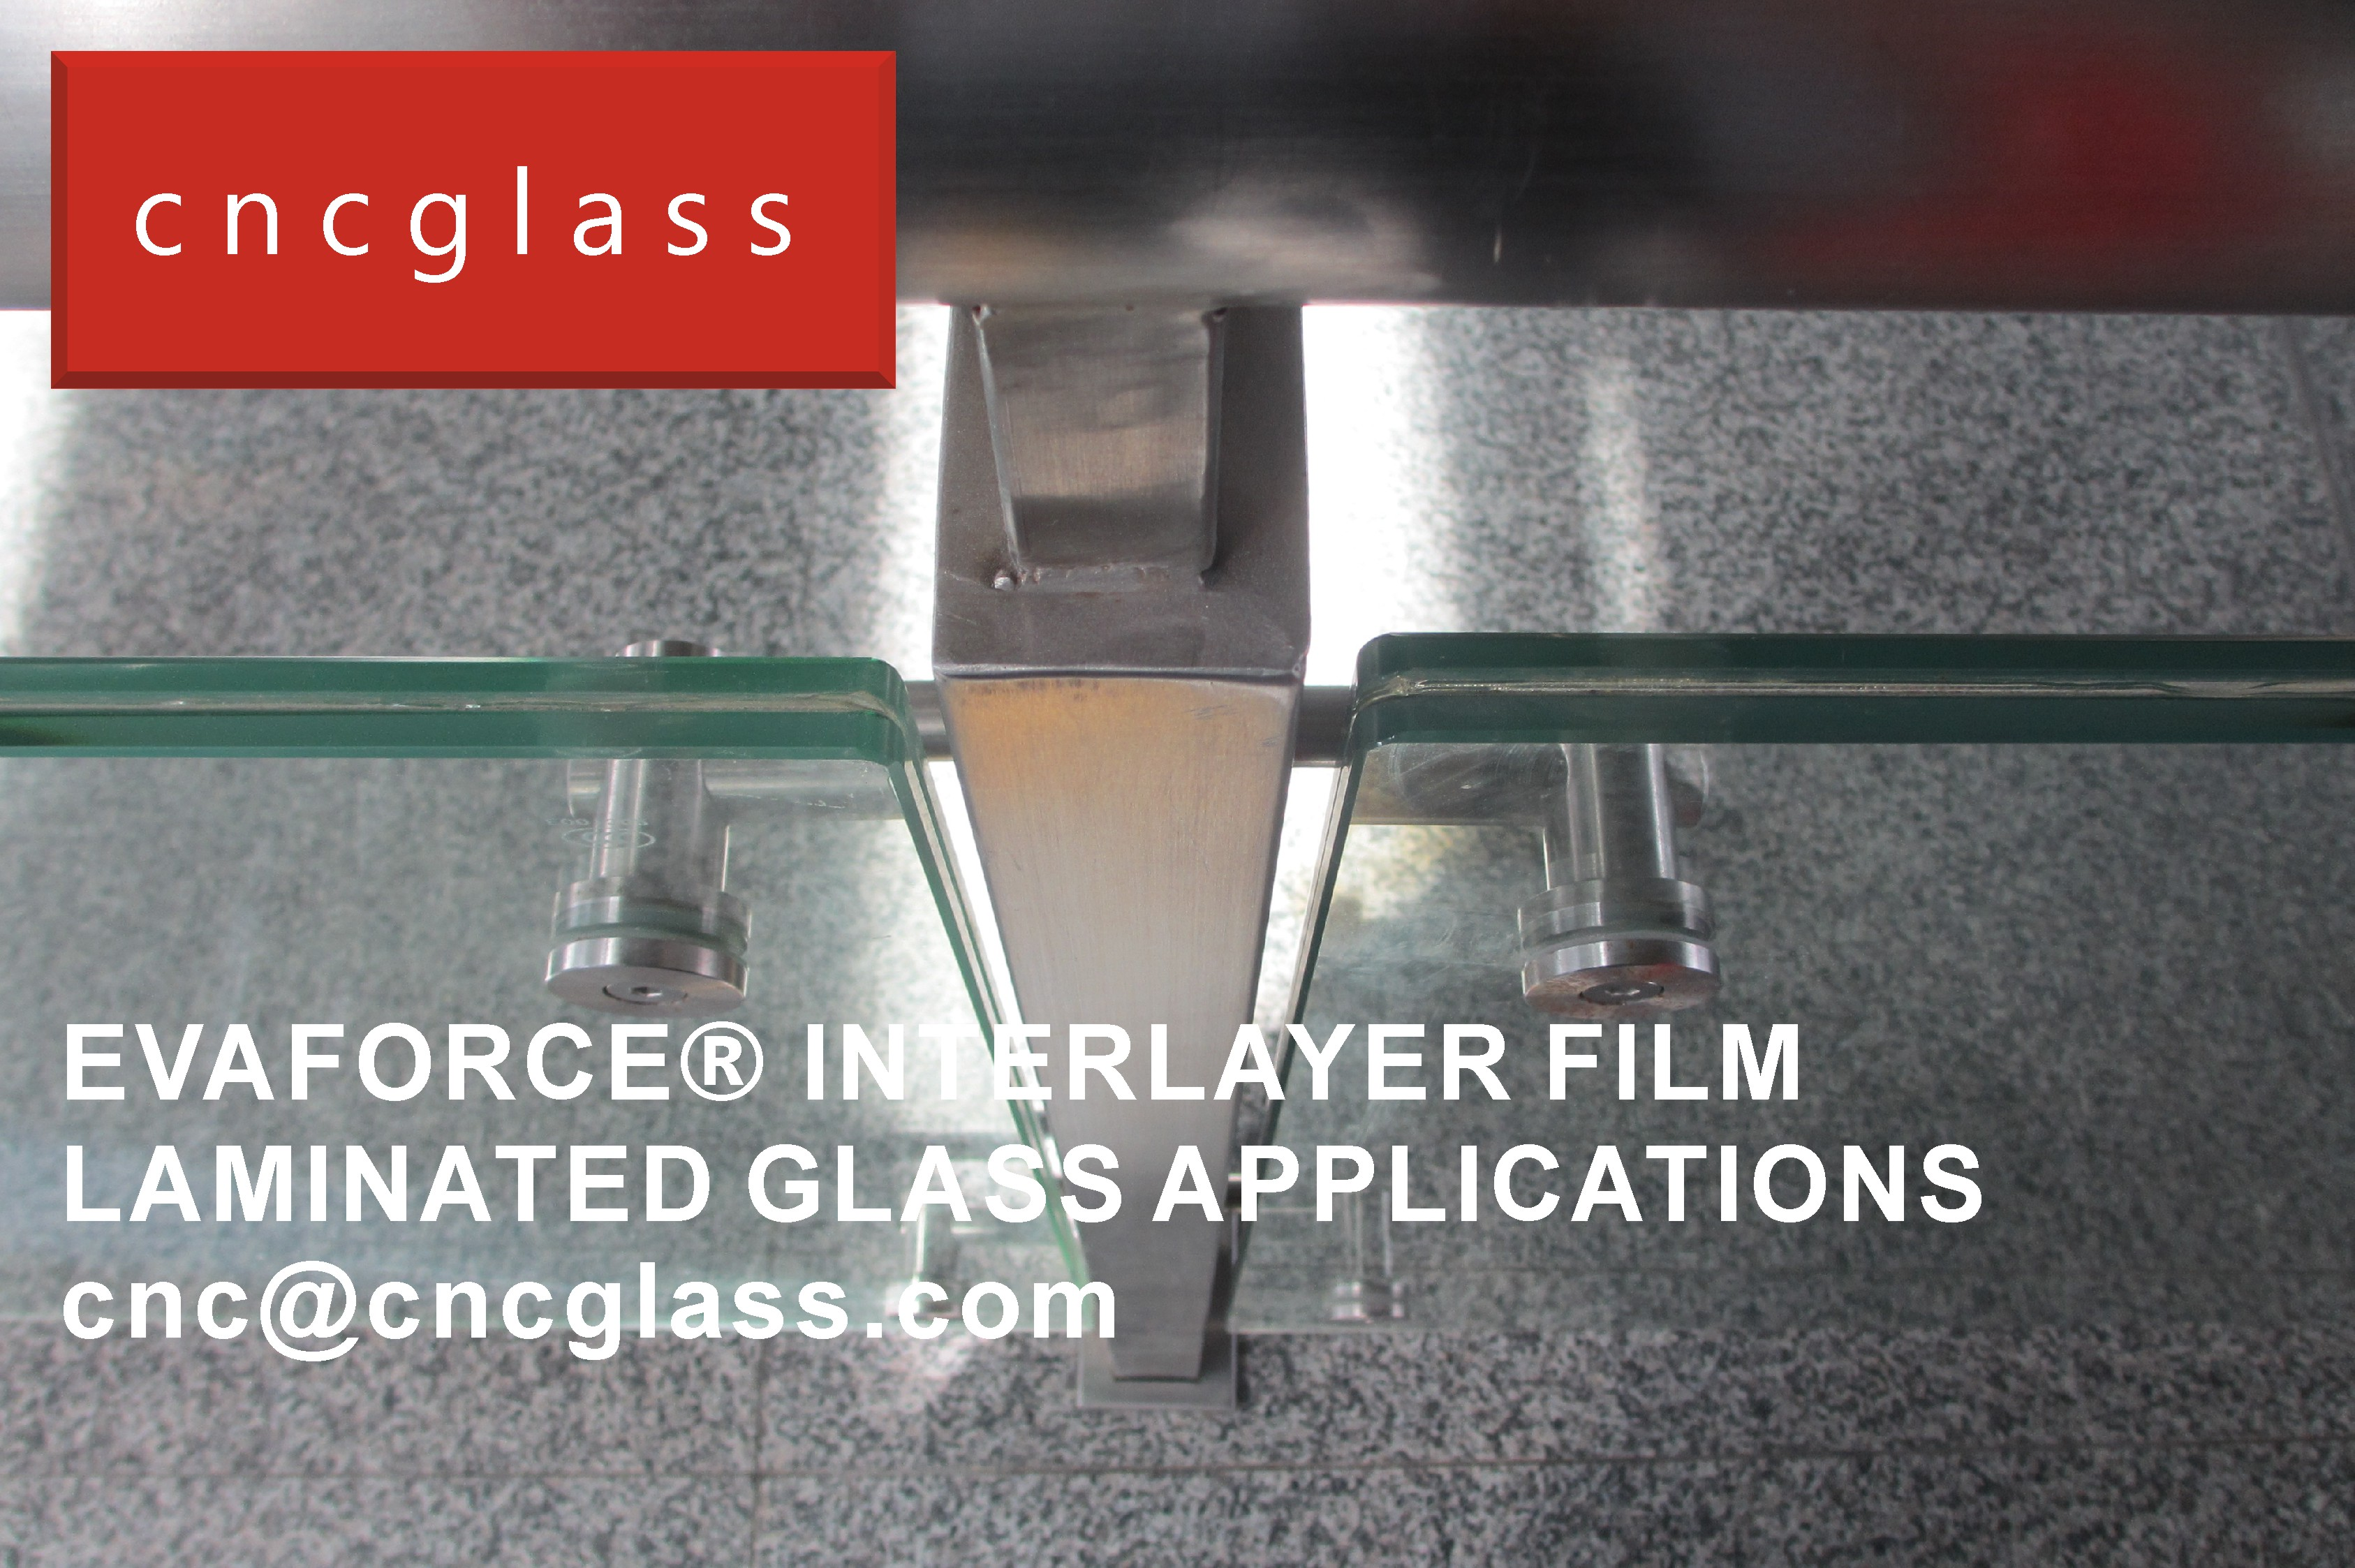 EVAFORCE INTERLAYER FILM LAMINATED GLASS APPLICATIONS (9)